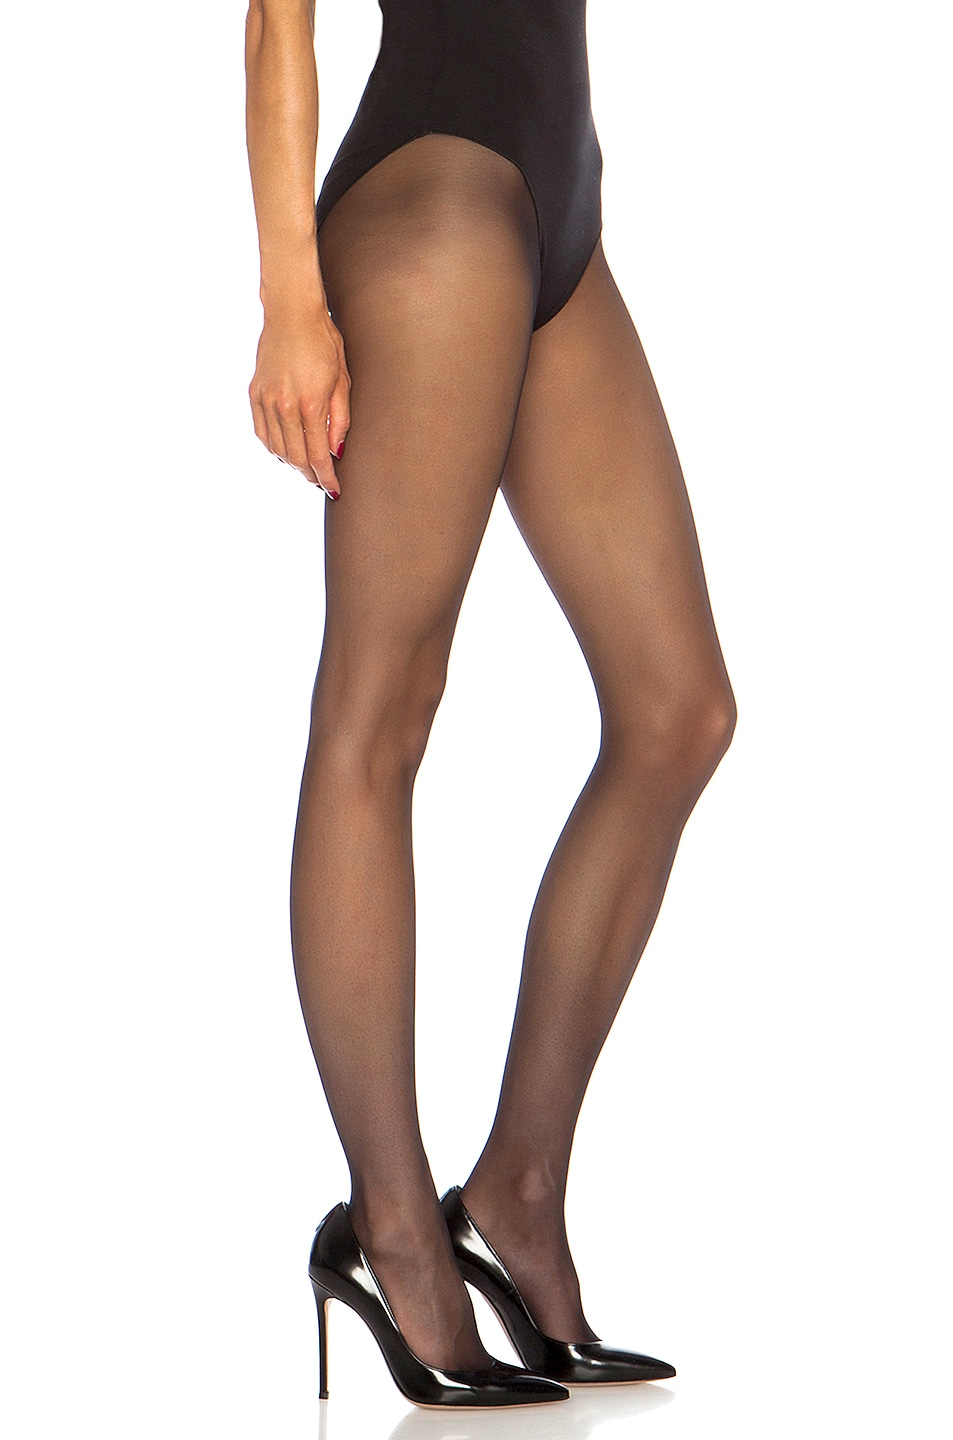 wolford chatrooms Wolford hosiery is a fine european brand that began in the post world war ii era pure silk stockings were in great demand after the war, and wolford supplied this luxury.